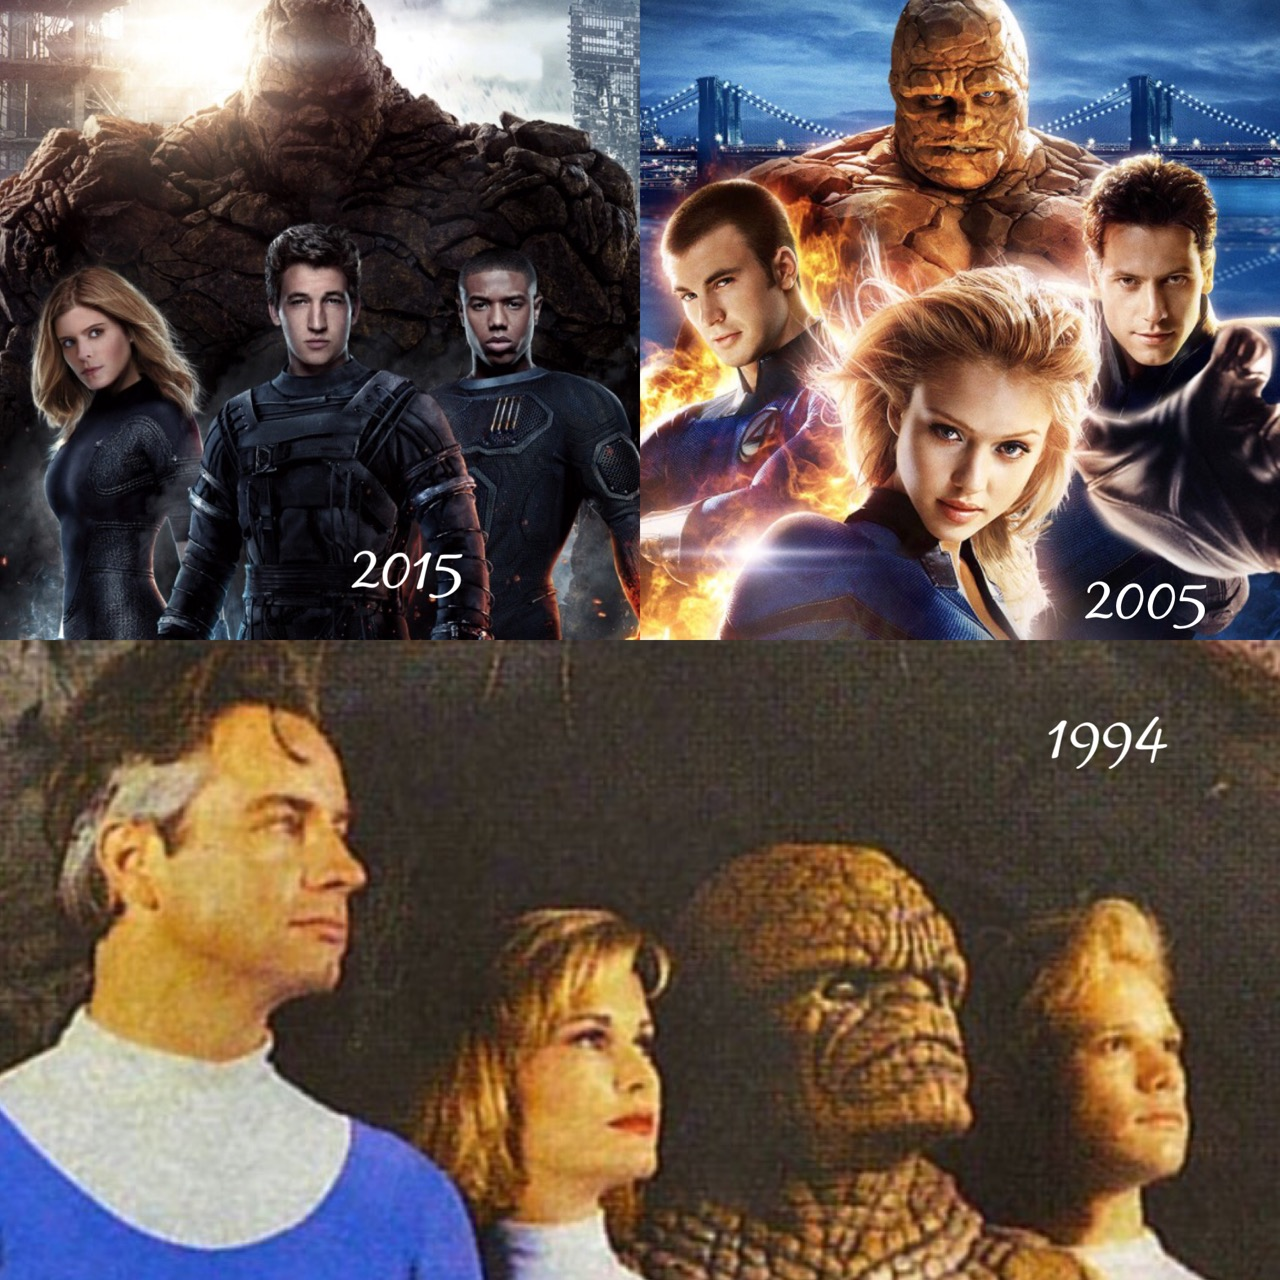 THE ELEPHANT IN THE ROOM... A MIXED RACE FAMILY IN 2015'S FANTASTIC FOUR via Swirl Nation Blog